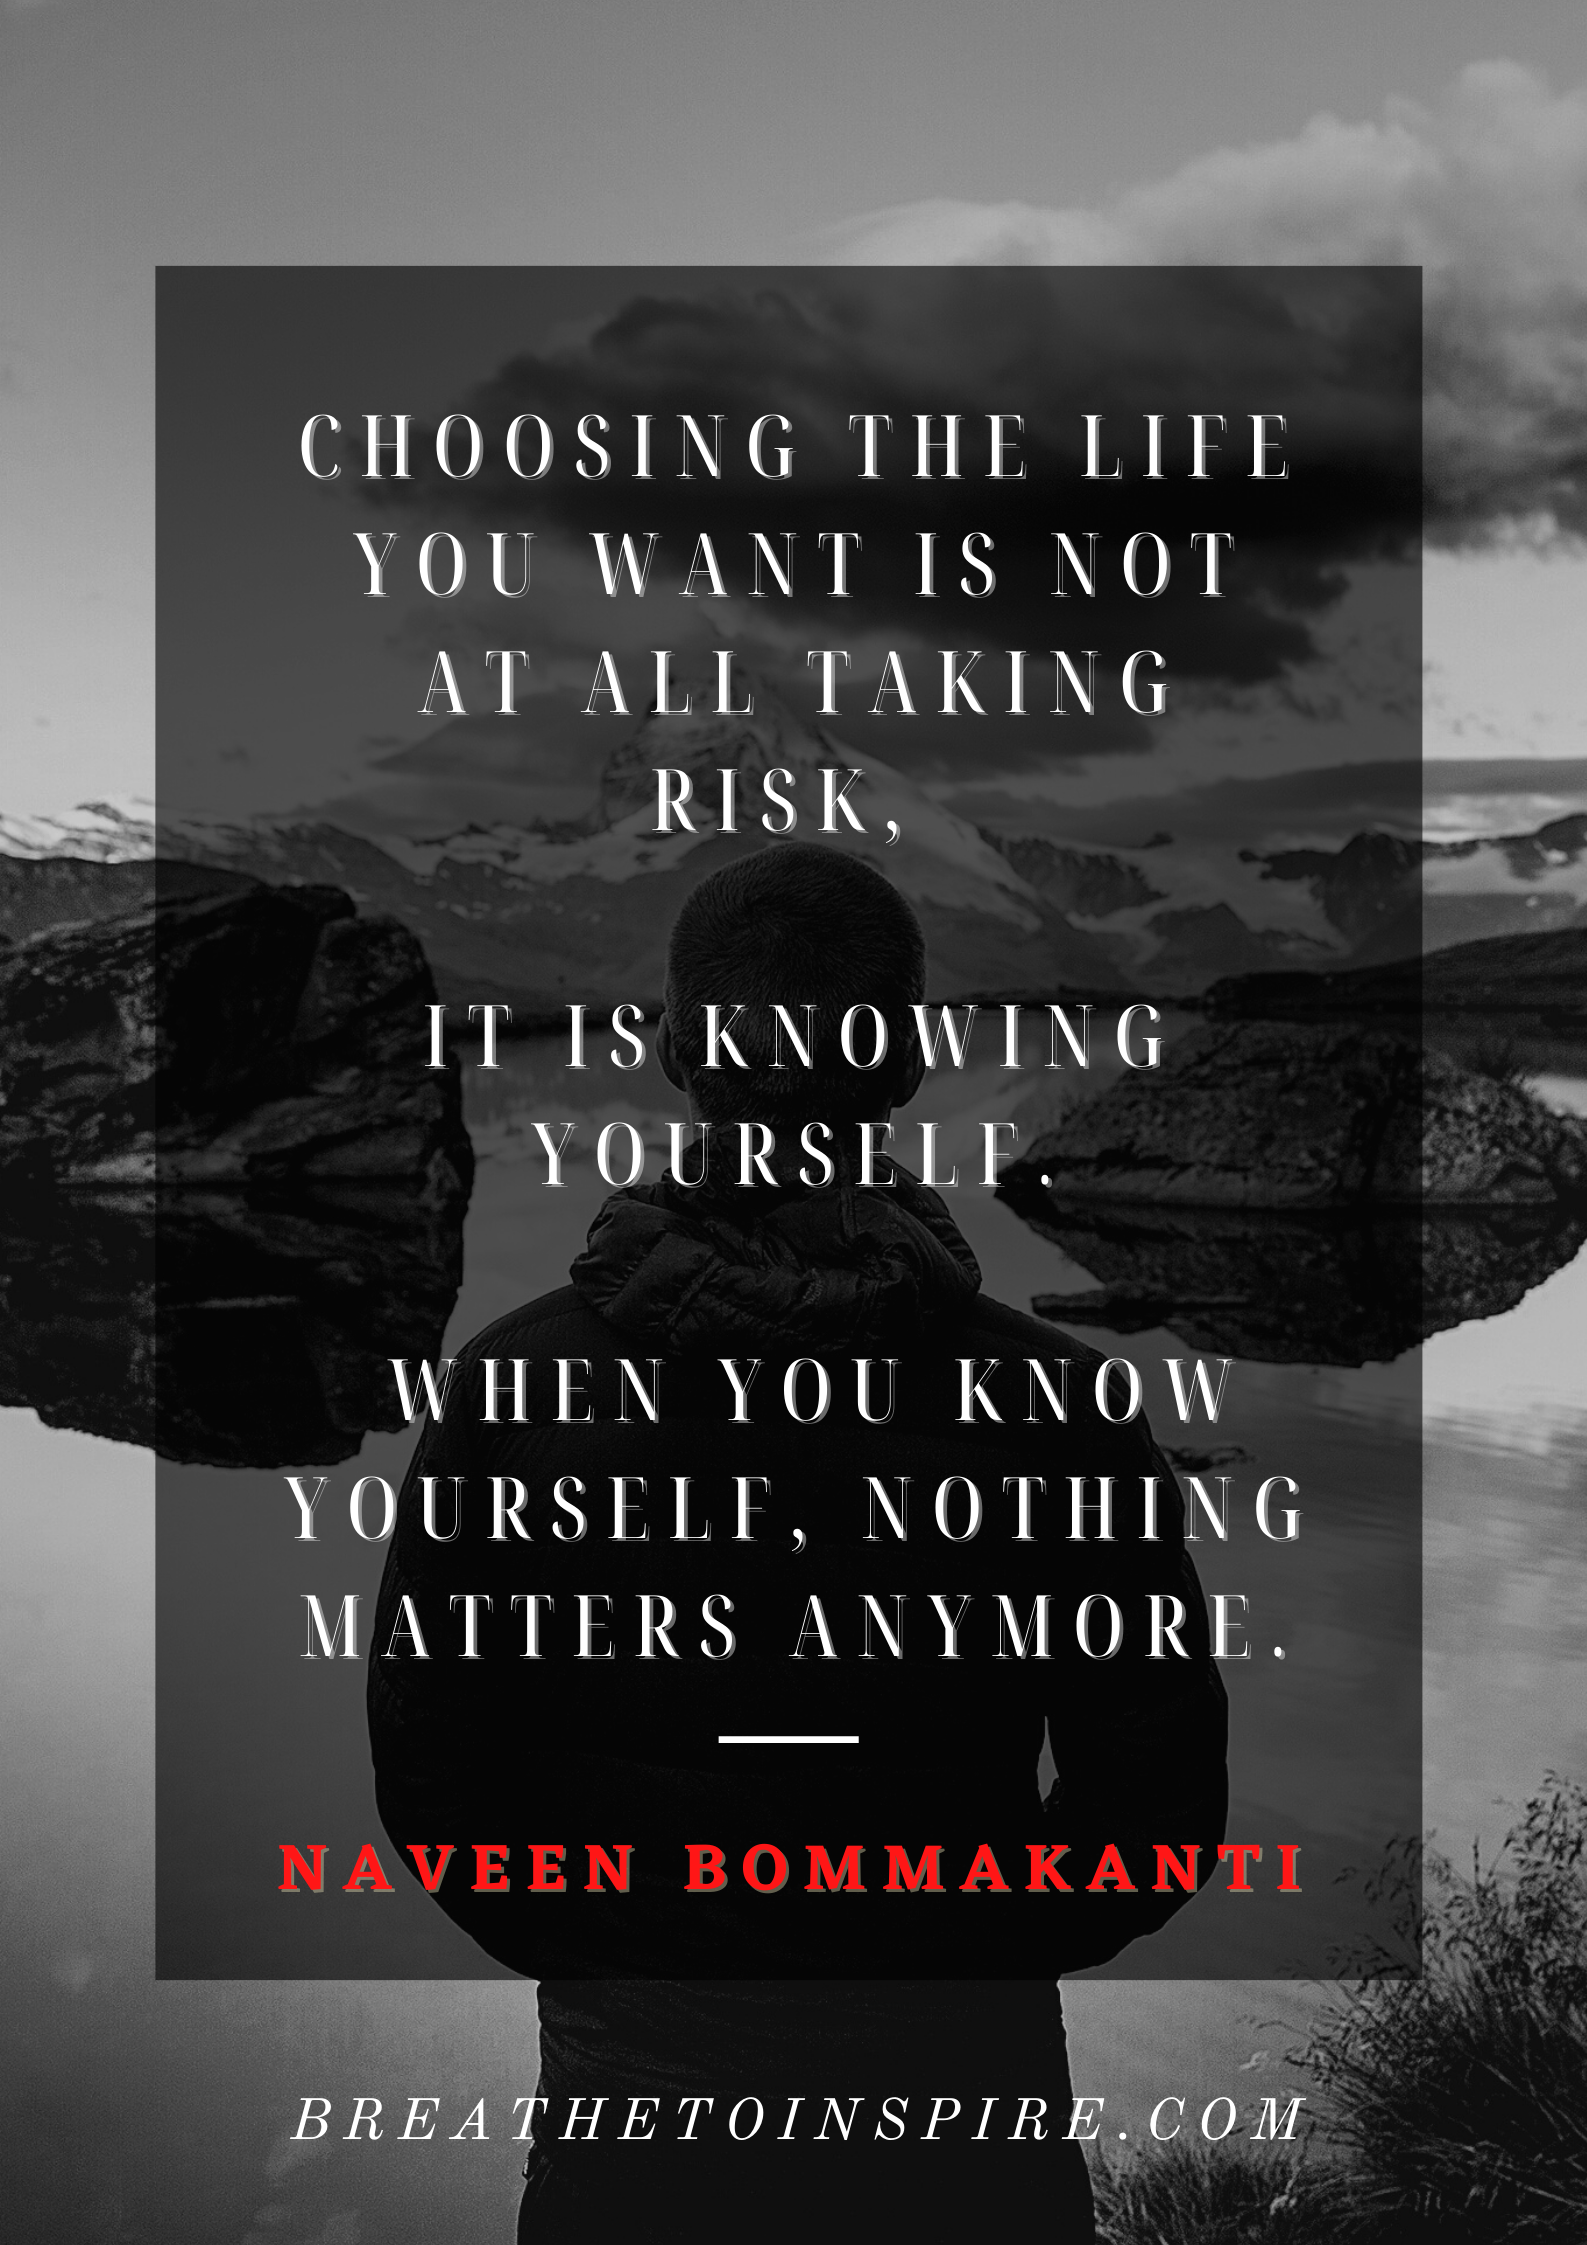 [Image] Know yourself